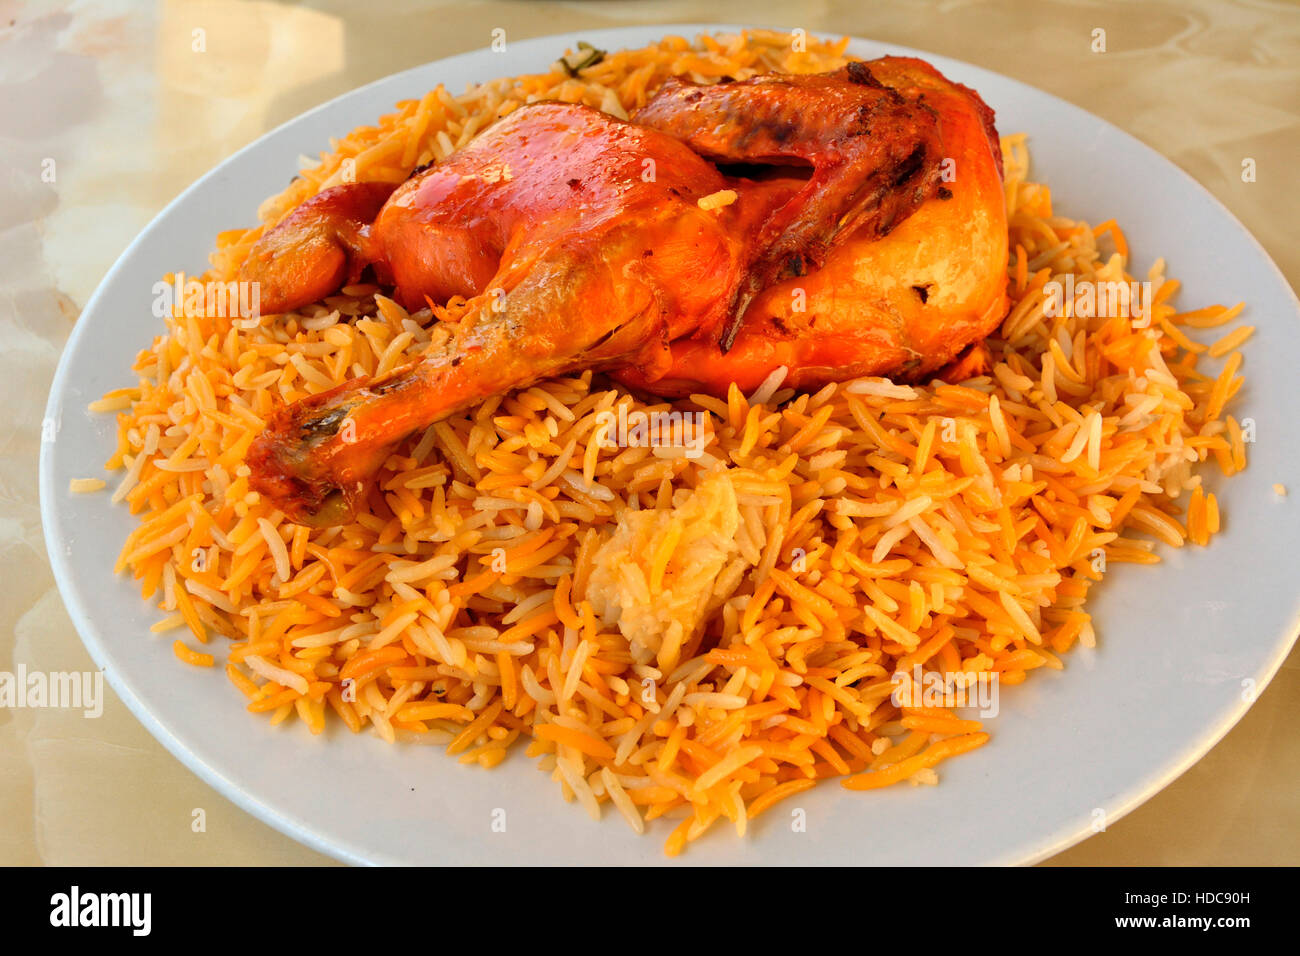 Chicken with rice - Stock Image